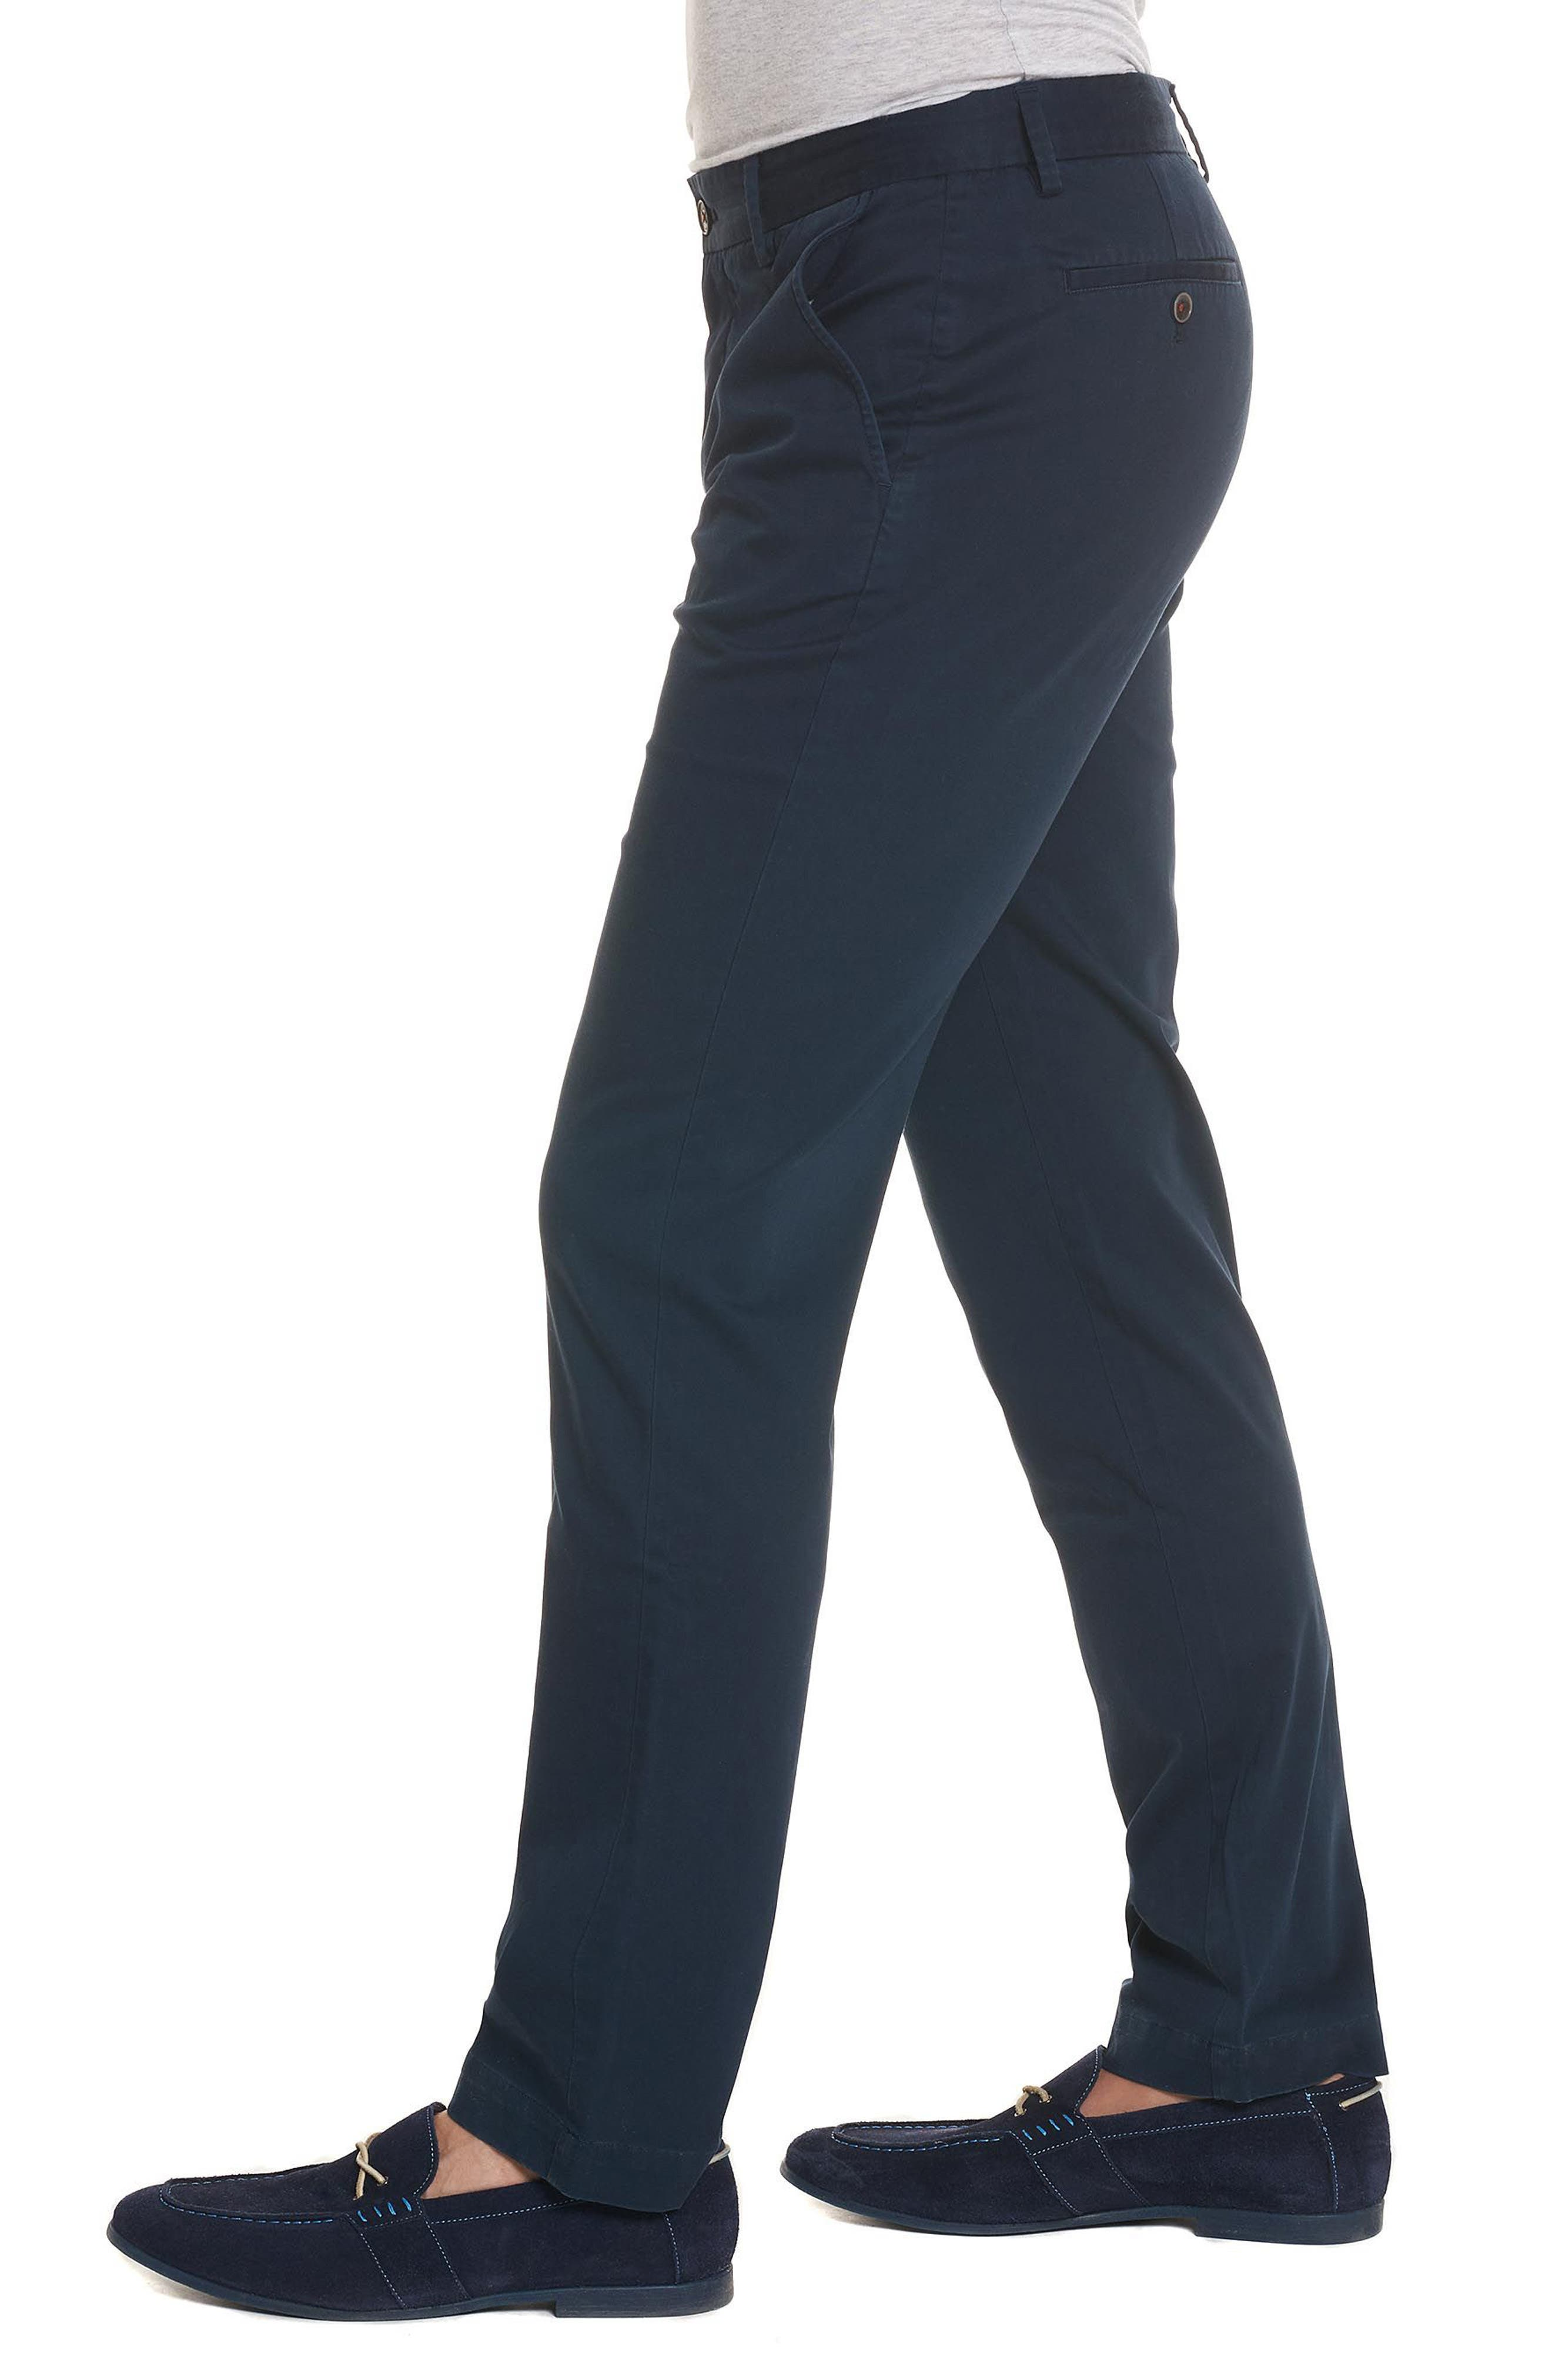 Burton Tailored Fit Pants,                             Alternate thumbnail 3, color,                             Navy